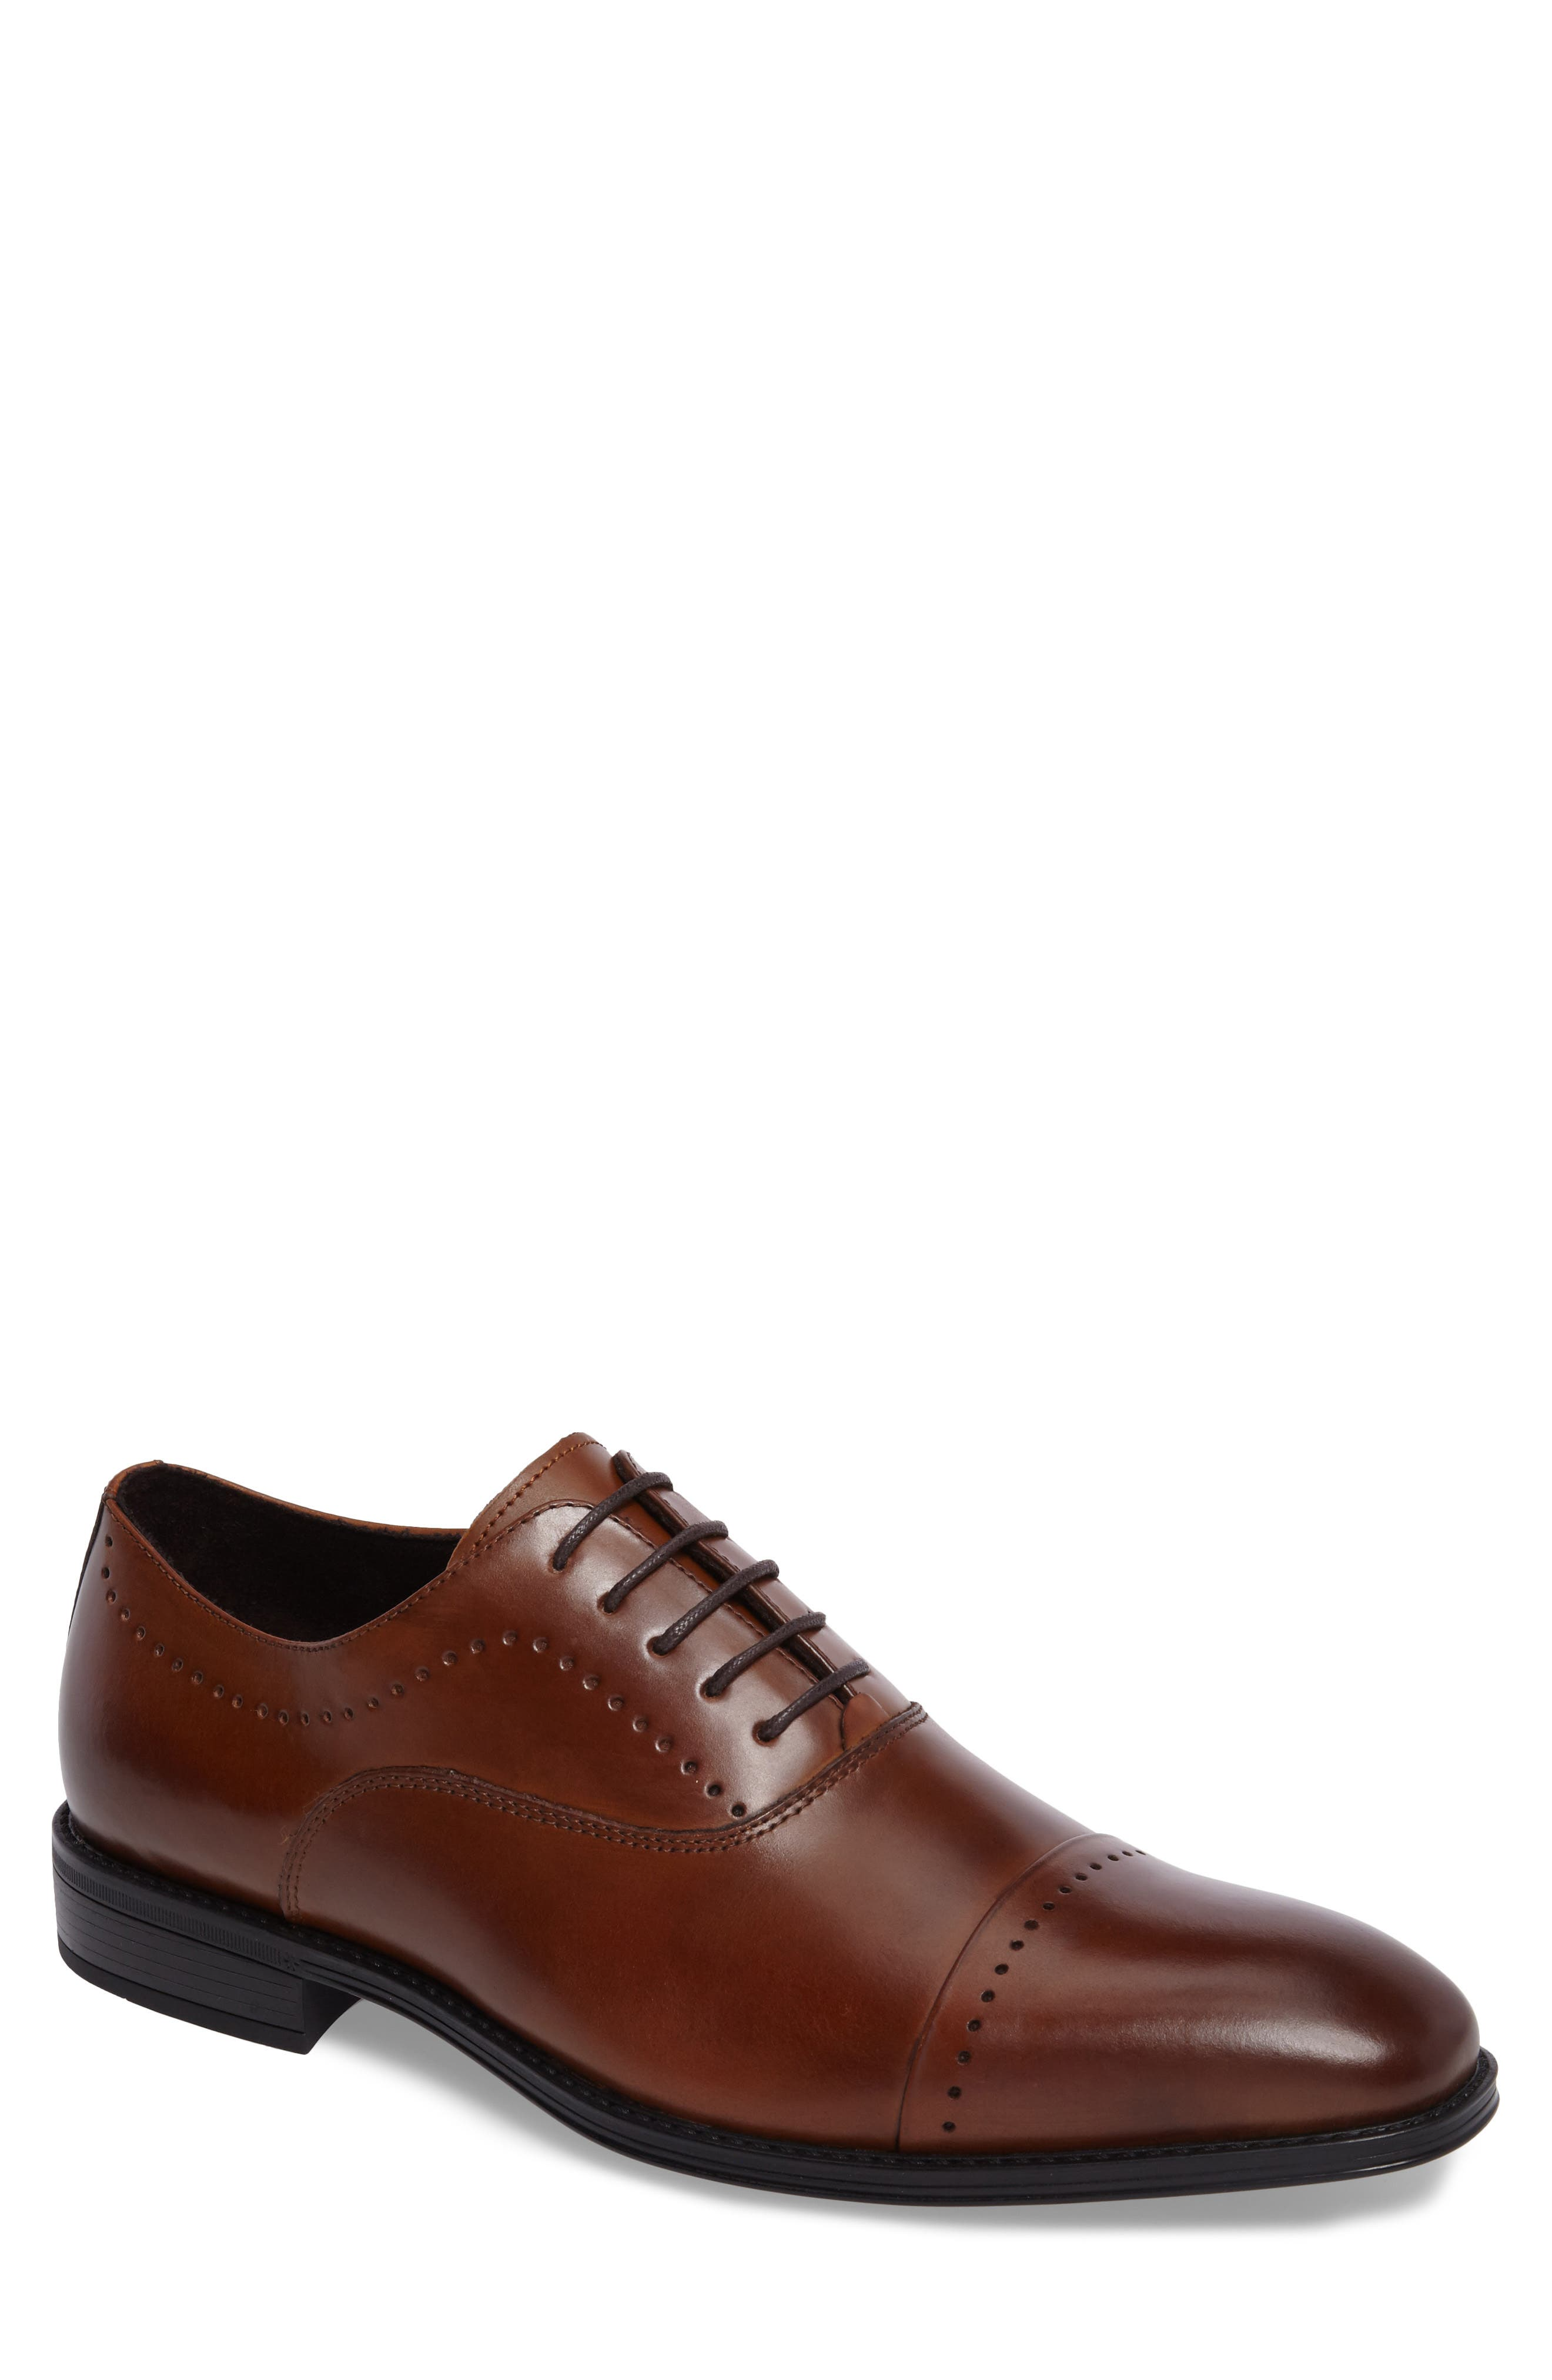 Alternate Image 1 Selected - Kenneth Cole New York Cap Toe Oxford (Men)